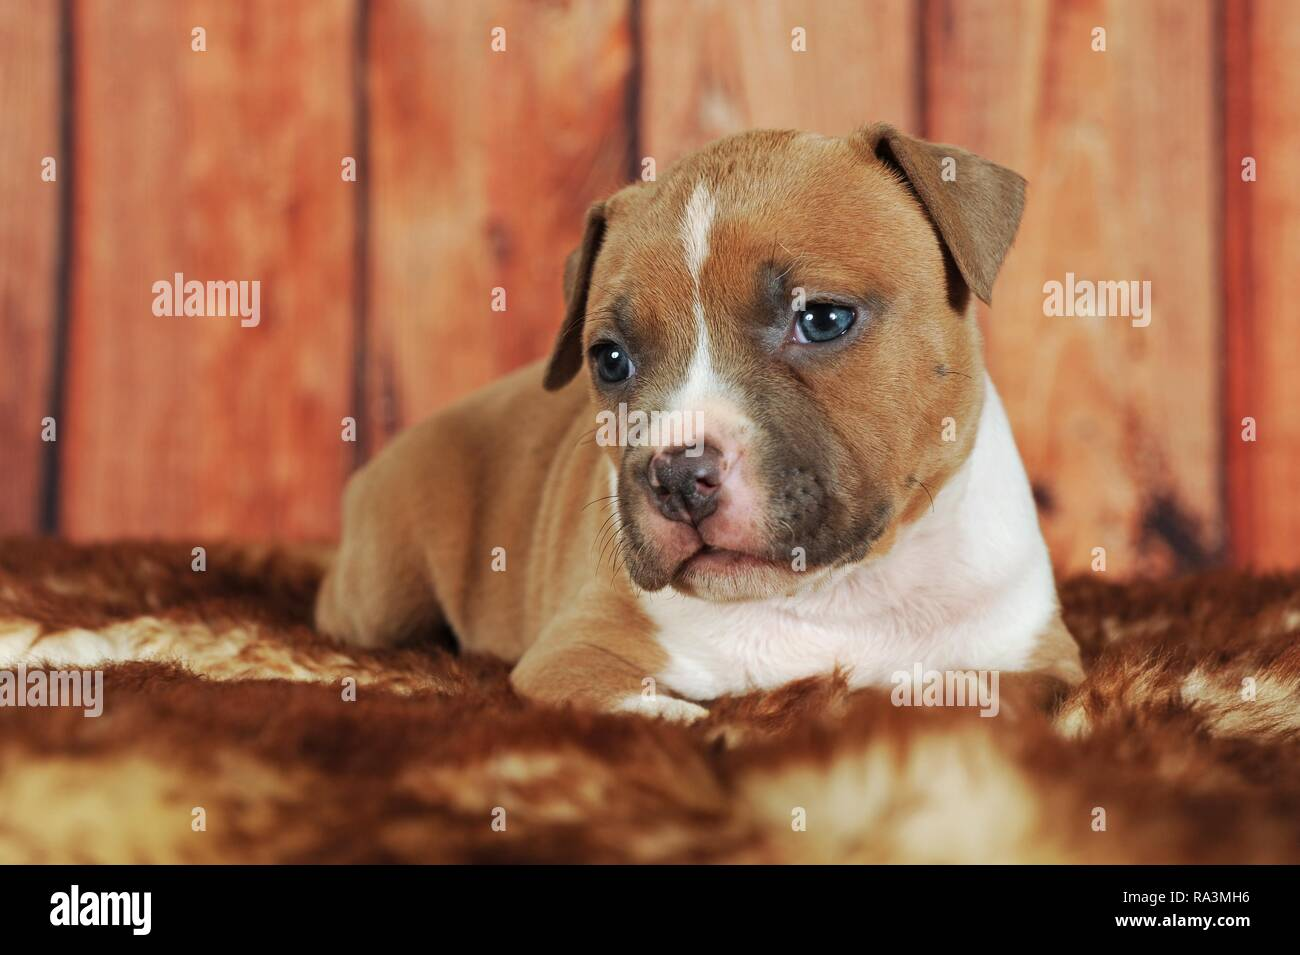 American Staffordshire Terrier, puppy 4 weeks, red-white, lies on fur blanket, Austria - Stock Image